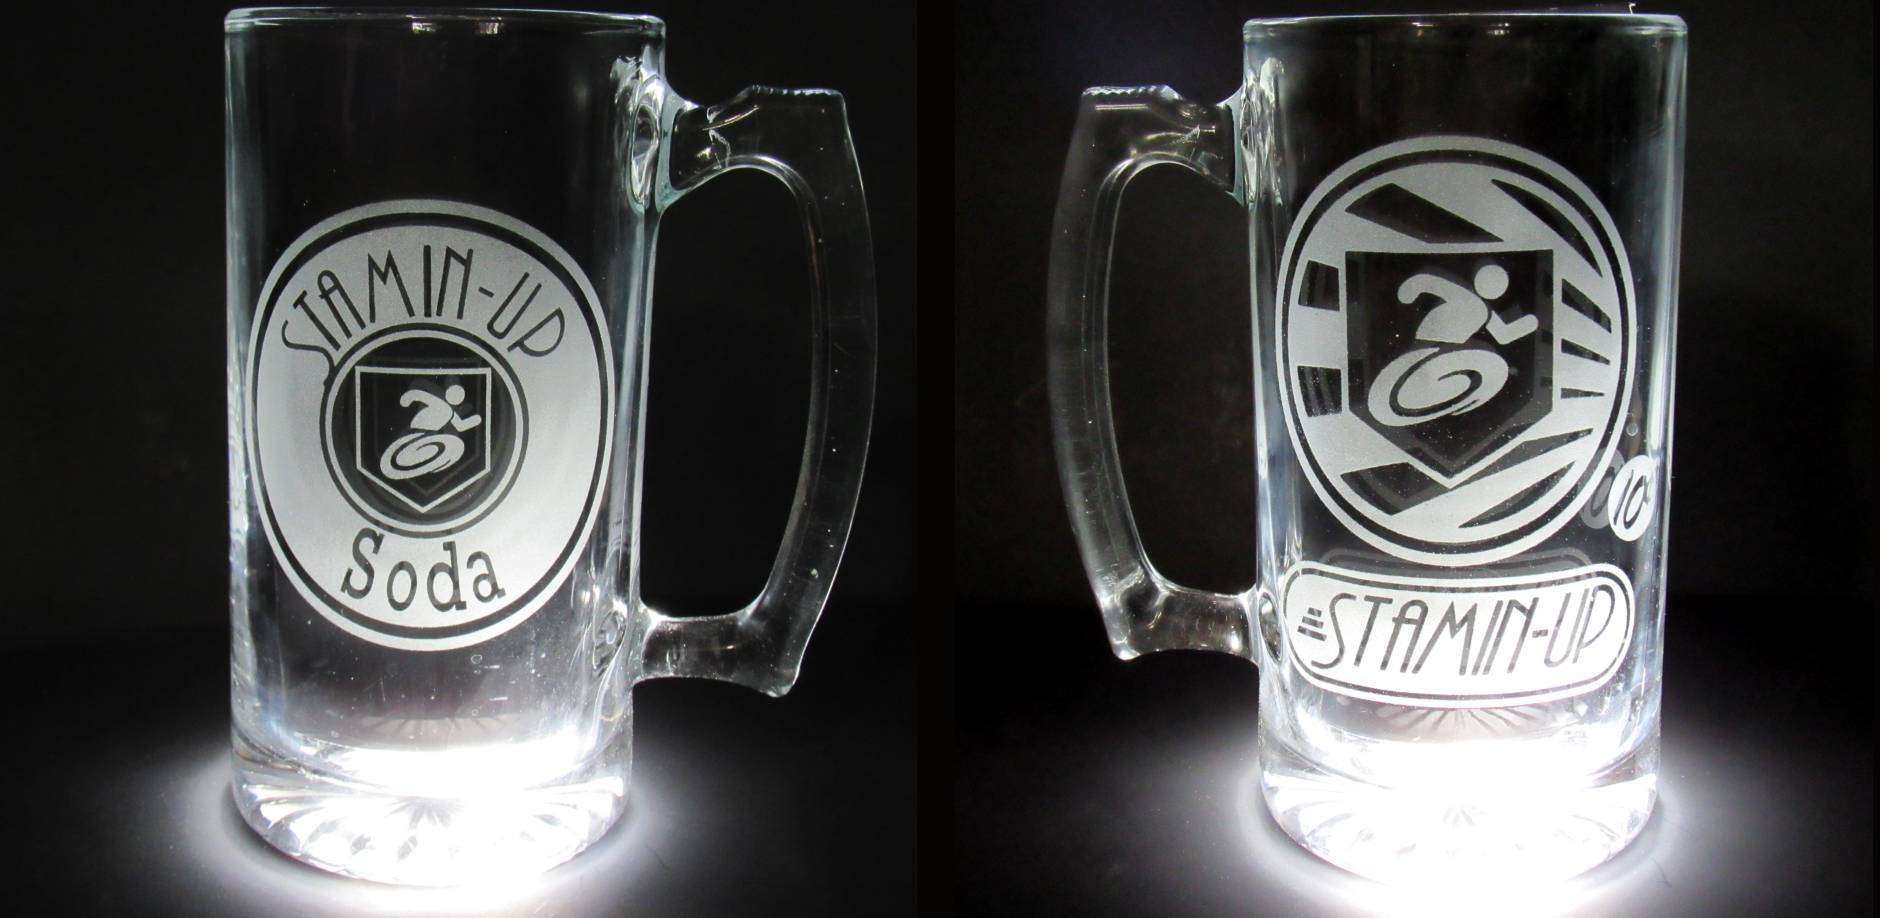 CoD Zombies Stamin-Up soda mug